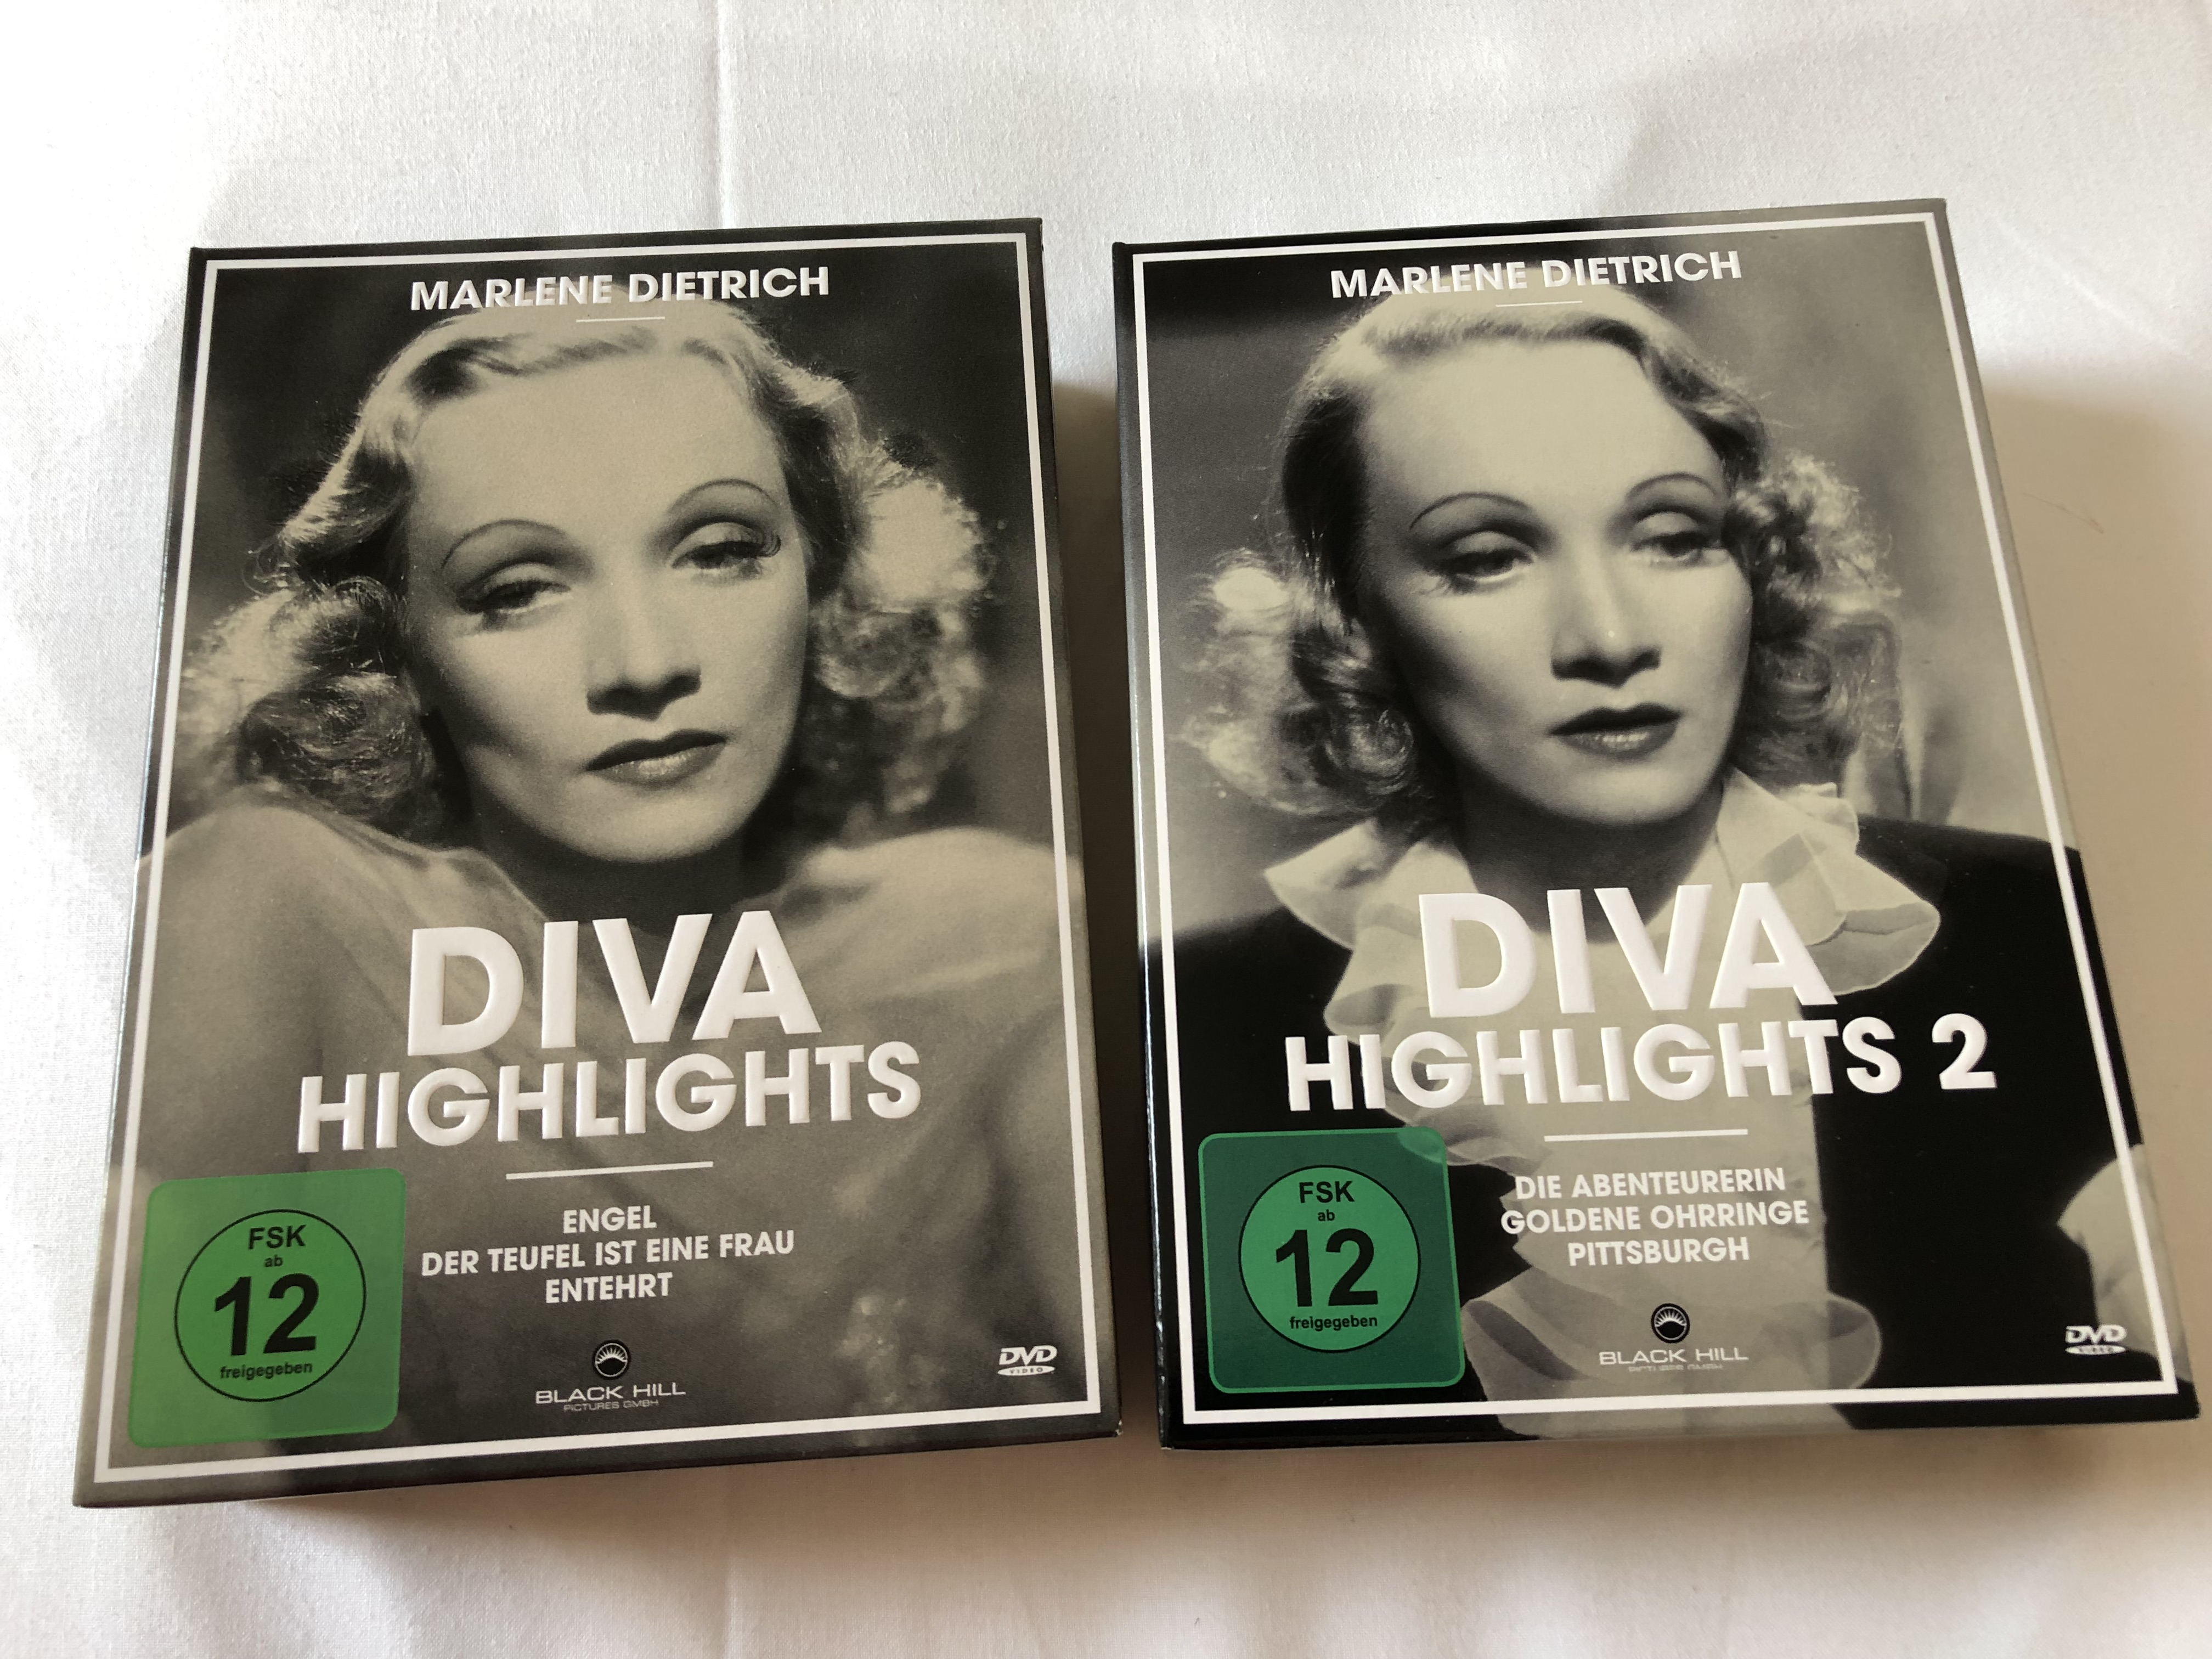 marlene-dietrich-diva-highlights-1-2-complete-dvd-set-6-highlights-black-white-classics-with-marlene-dietrich-the-film-diva-angel-the-devil-is-a-woman-dishonored-the-flame-of-new-orleans-golden-earring-pittsburgh-1-.jpg